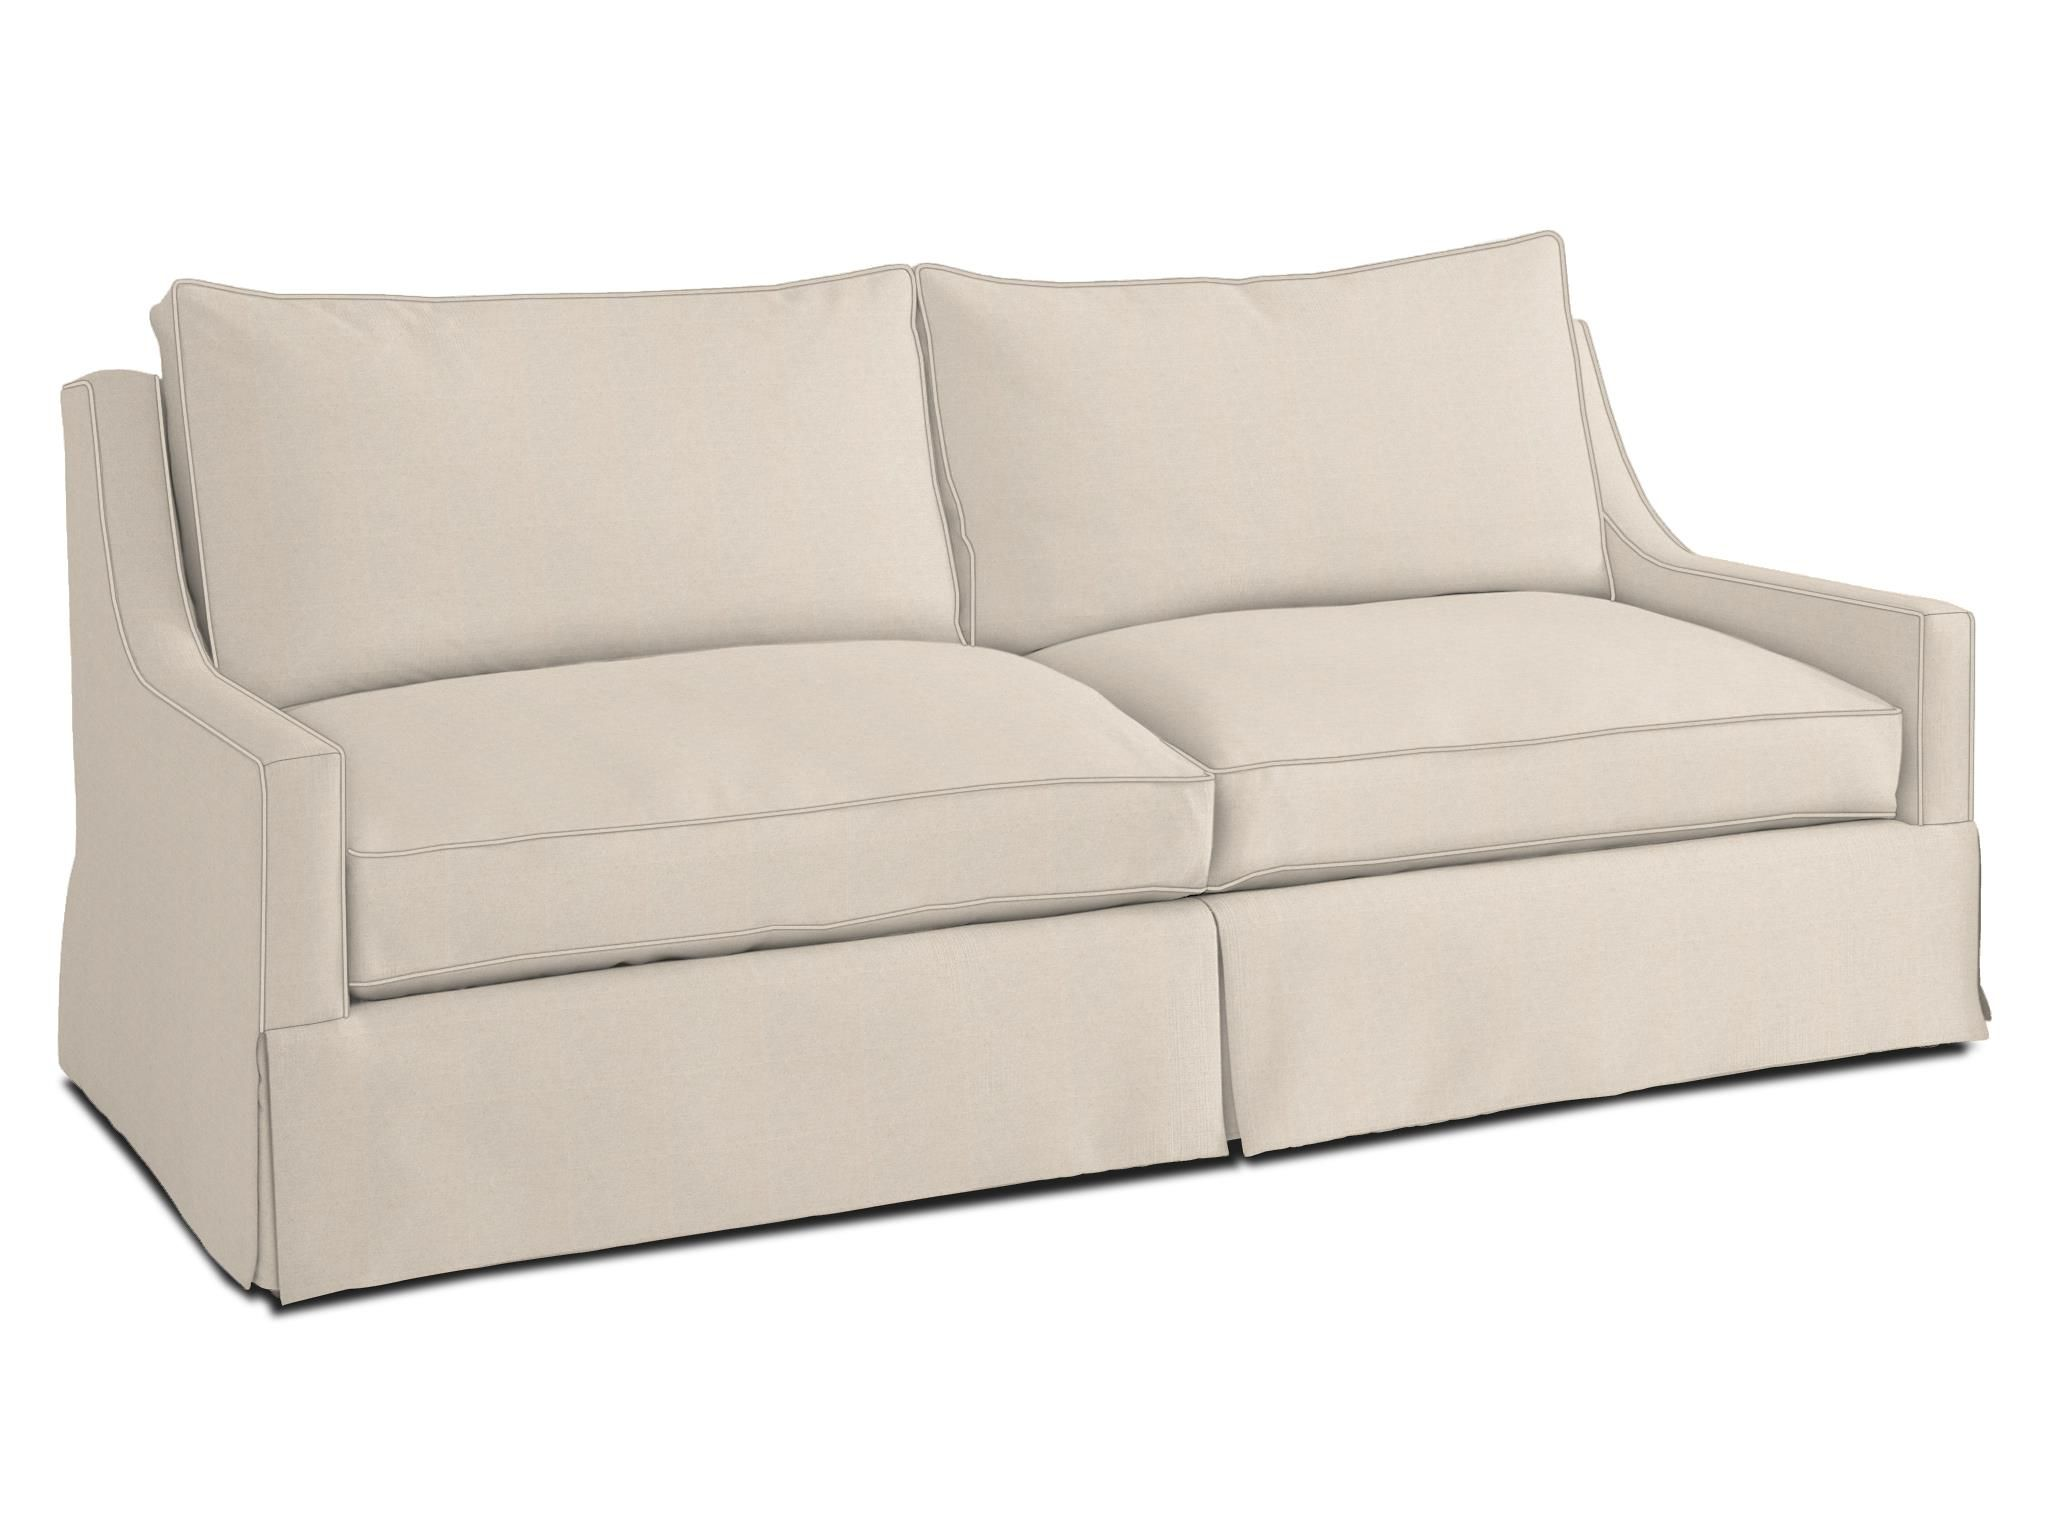 Best Exeter Sofa Bassett Furniture Inc Furniture Sofa 400 x 300